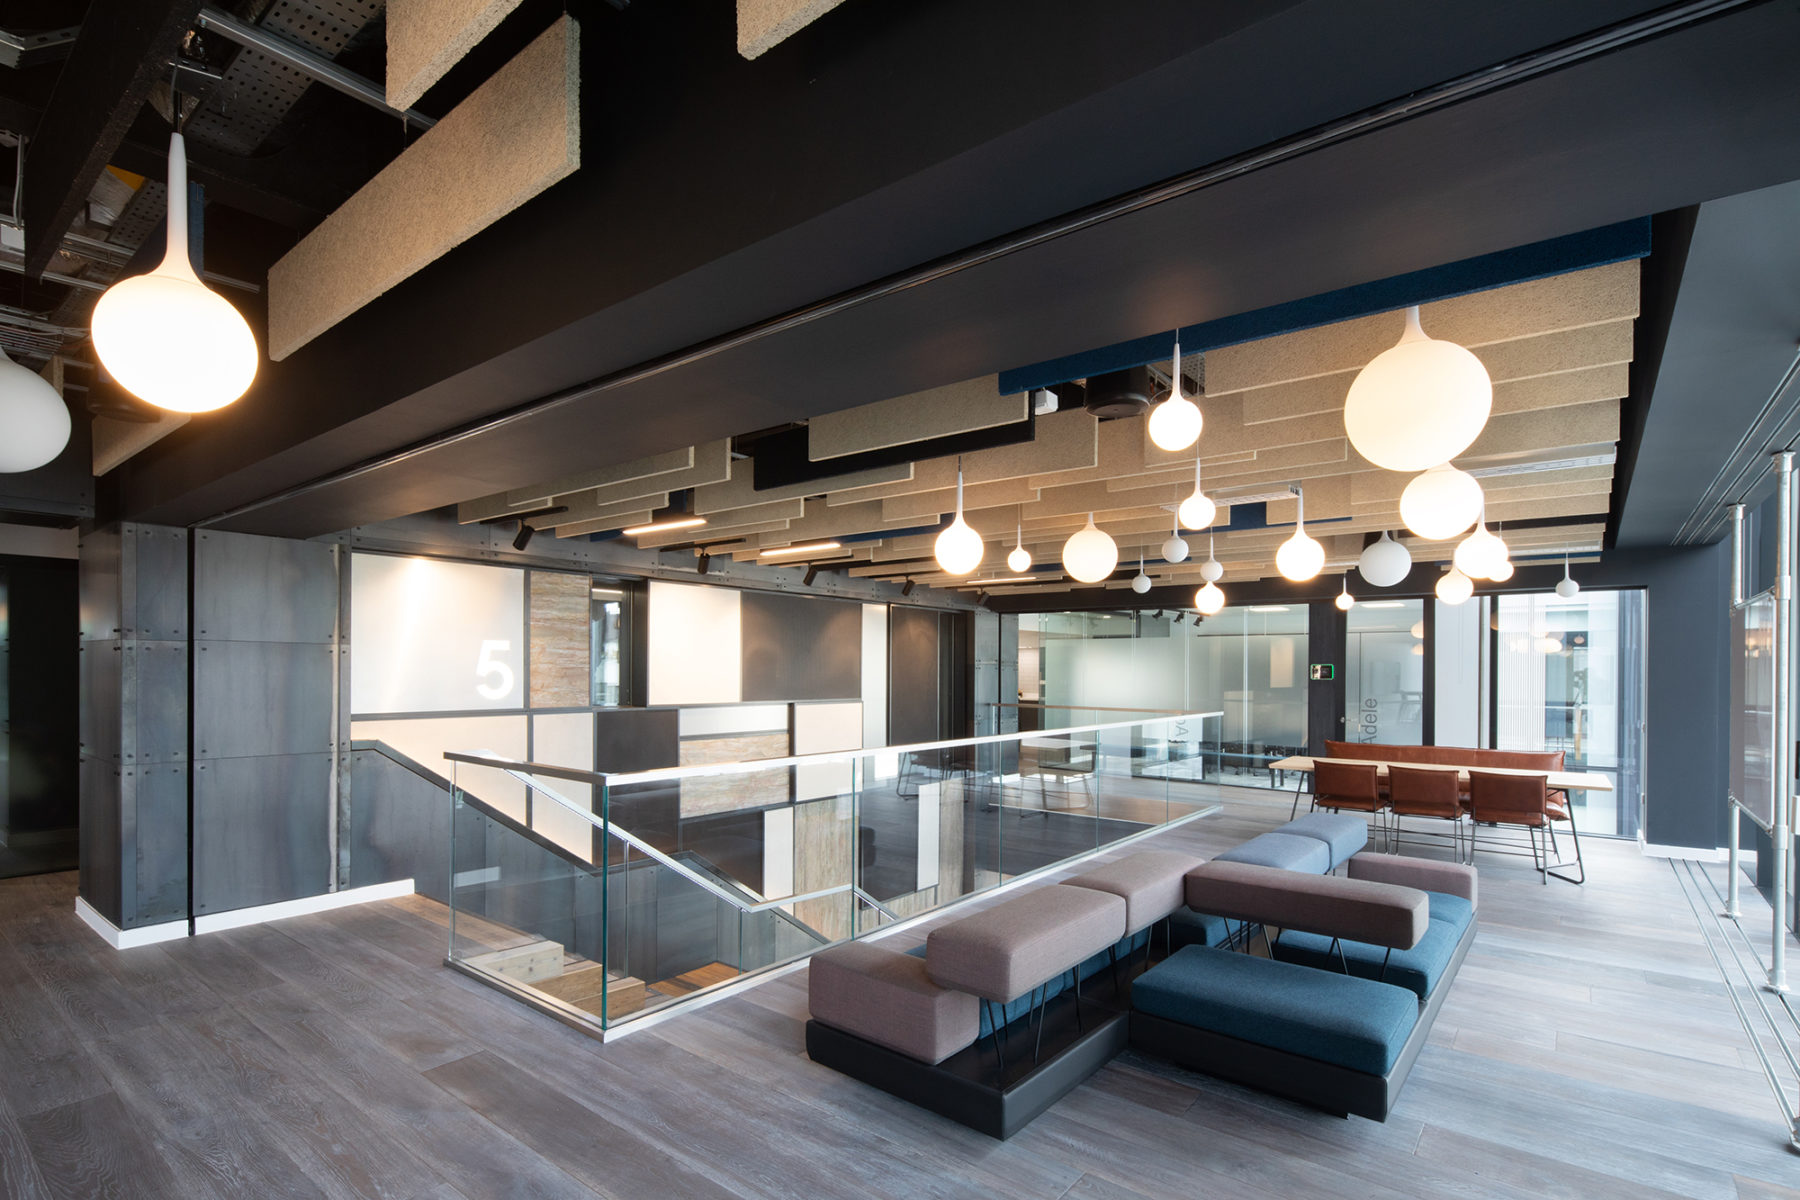 Breakout space with Knauf AMF ceiling panels, Cirrus Logic | McAteer Photo